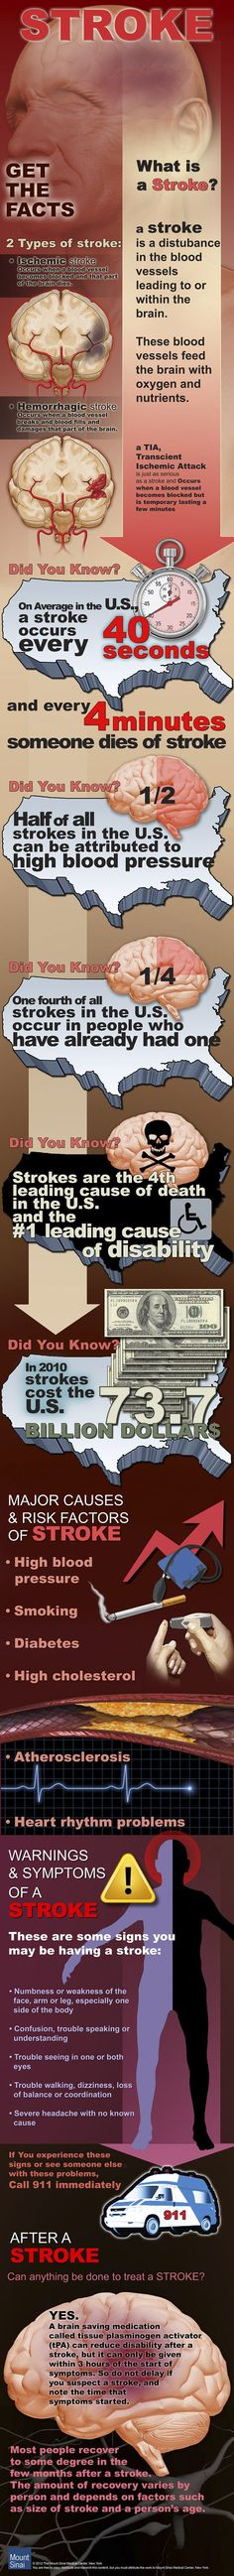 Get The Facts On Stroke